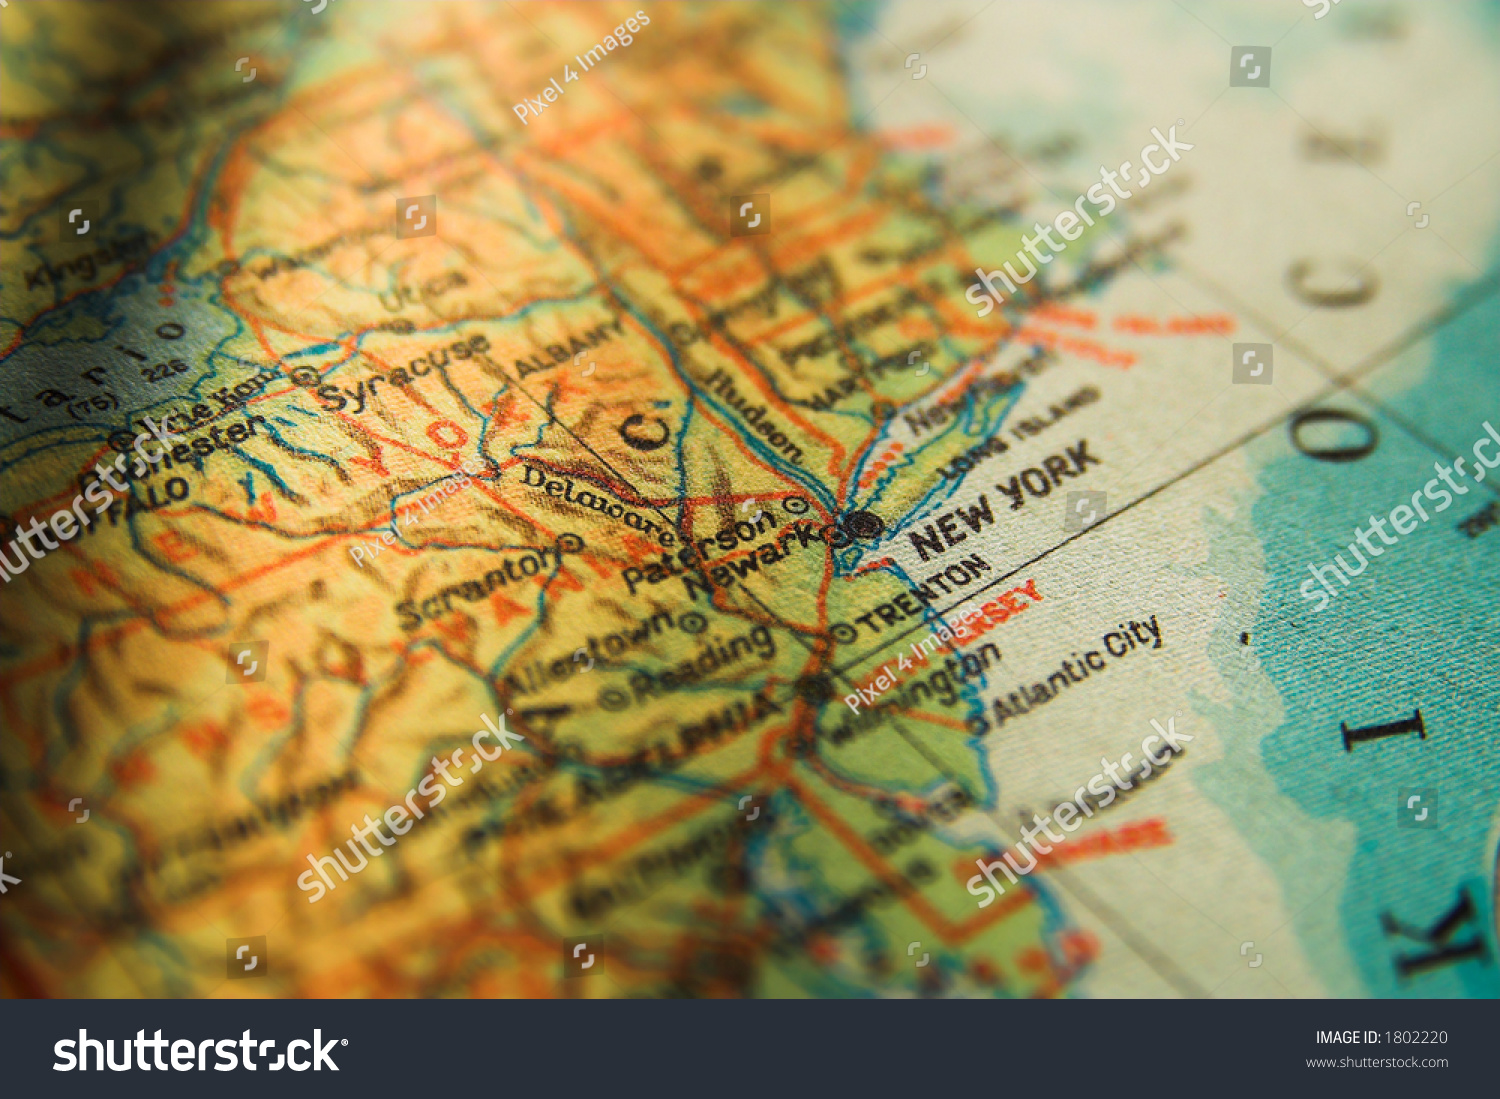 Us Map New York Focus New Stock Photo Shutterstock - New york in us map